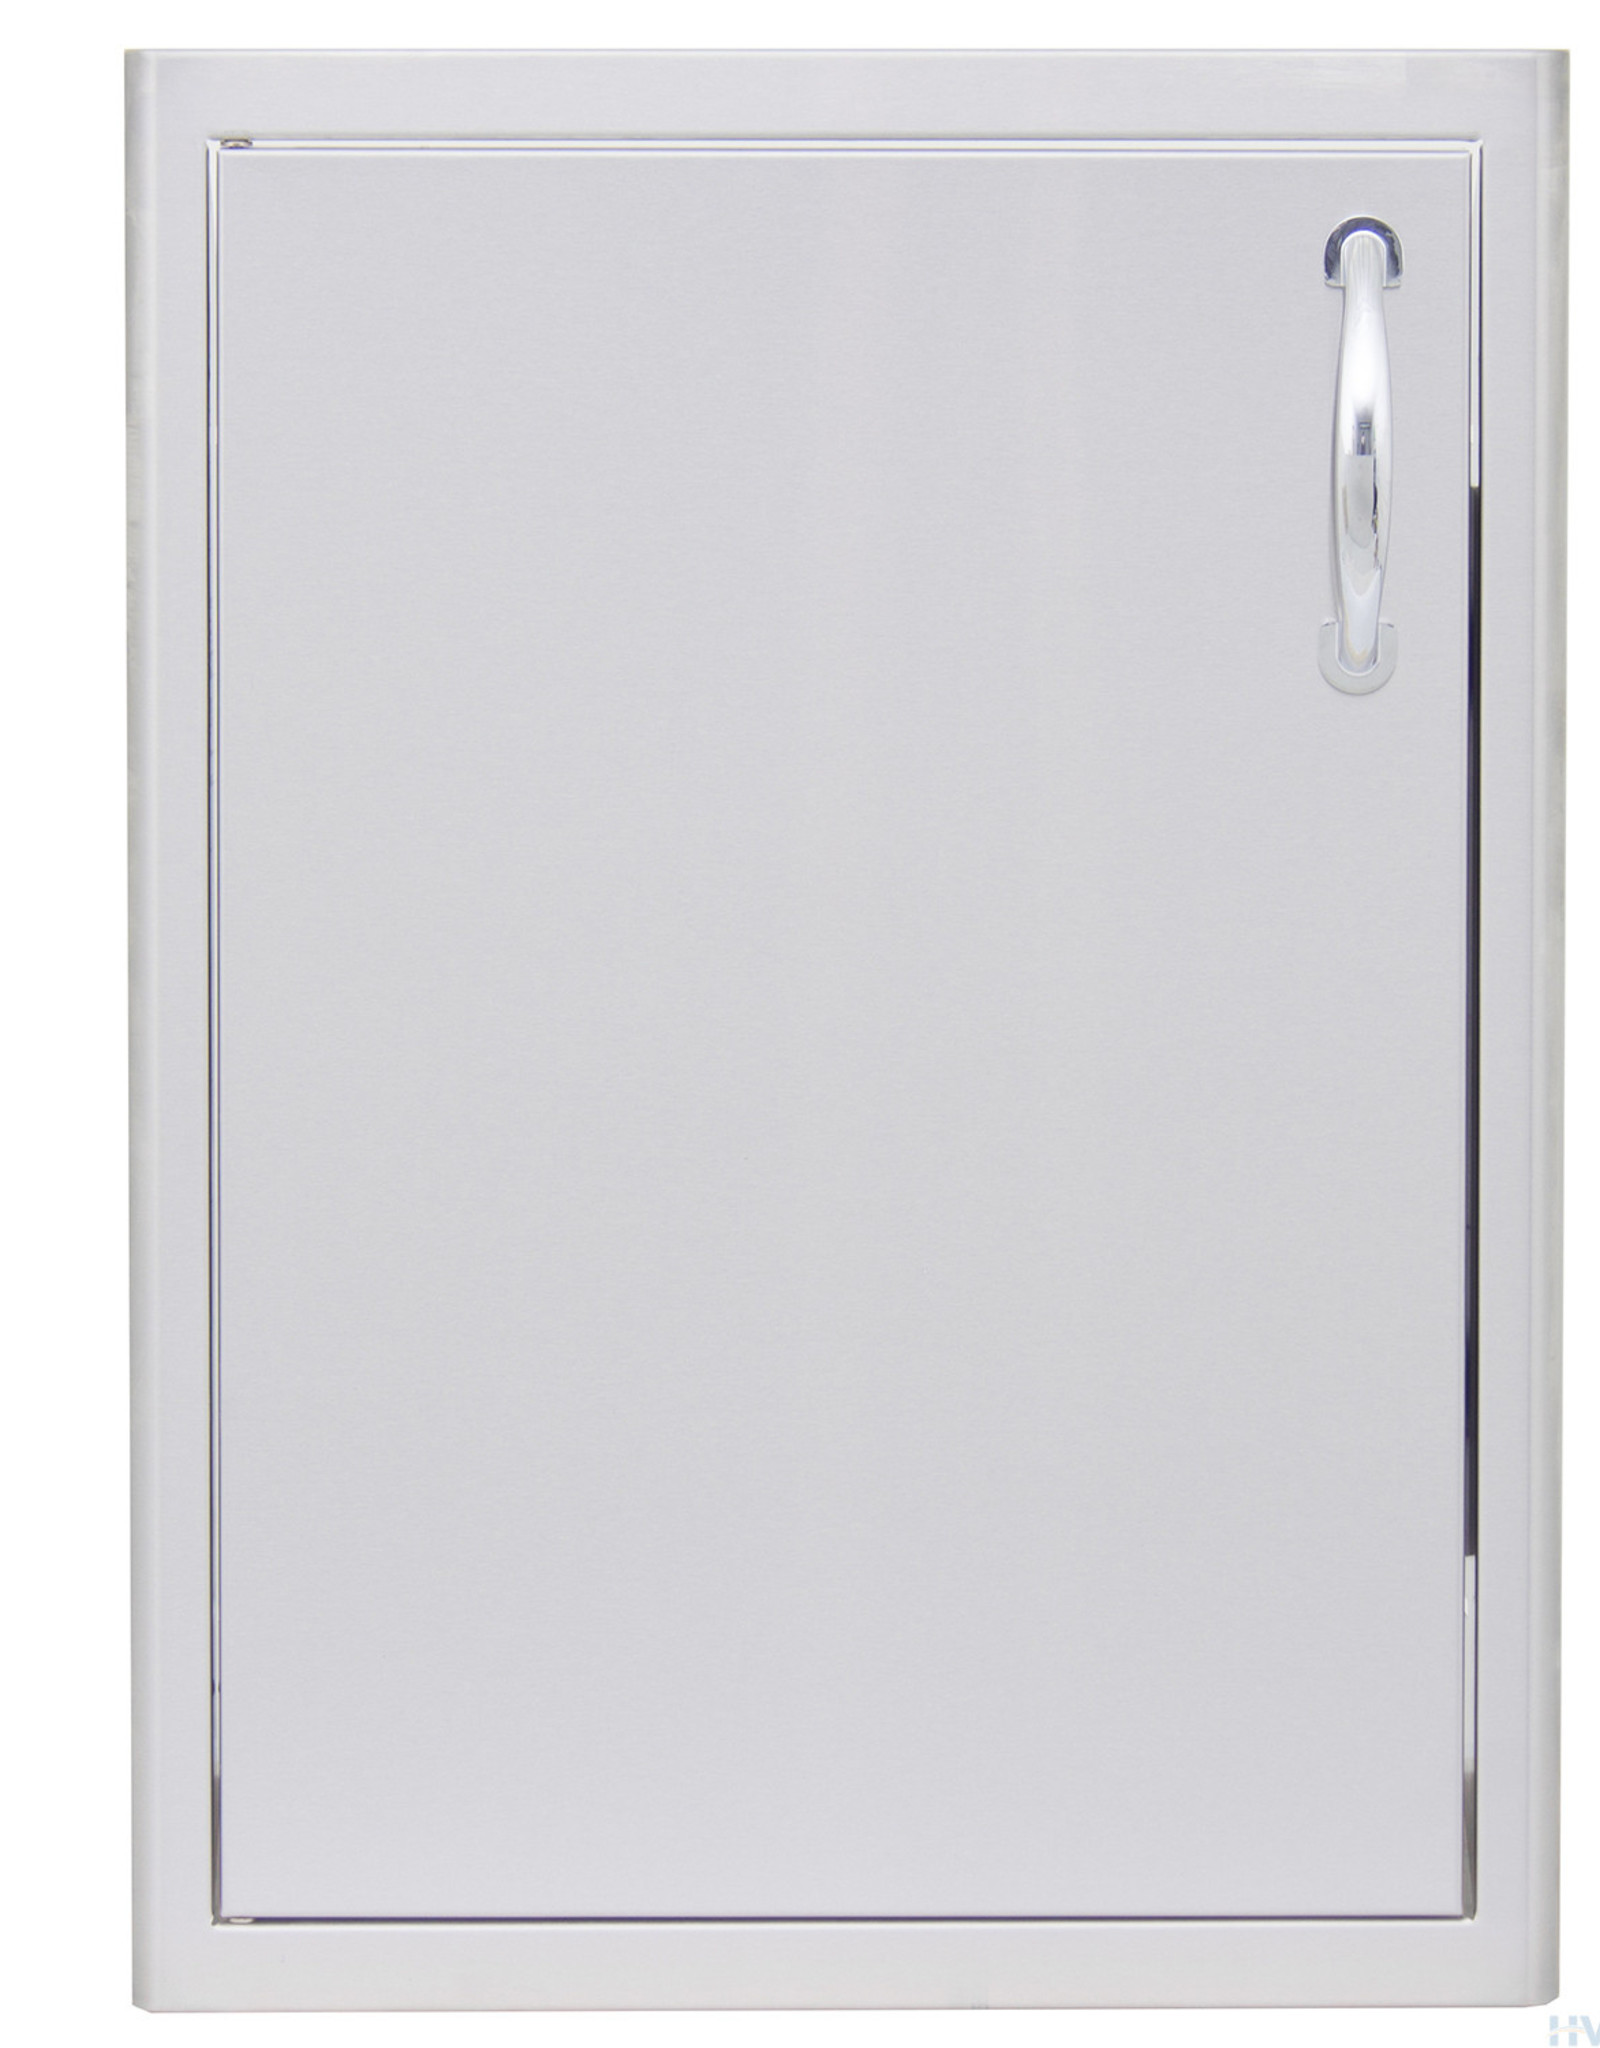 Blaze Outdoor Products Blaze 21-Inch Stainless Steel Single Access Door  - Reversible - Vertical - BLZ-SINGLE-2417-R